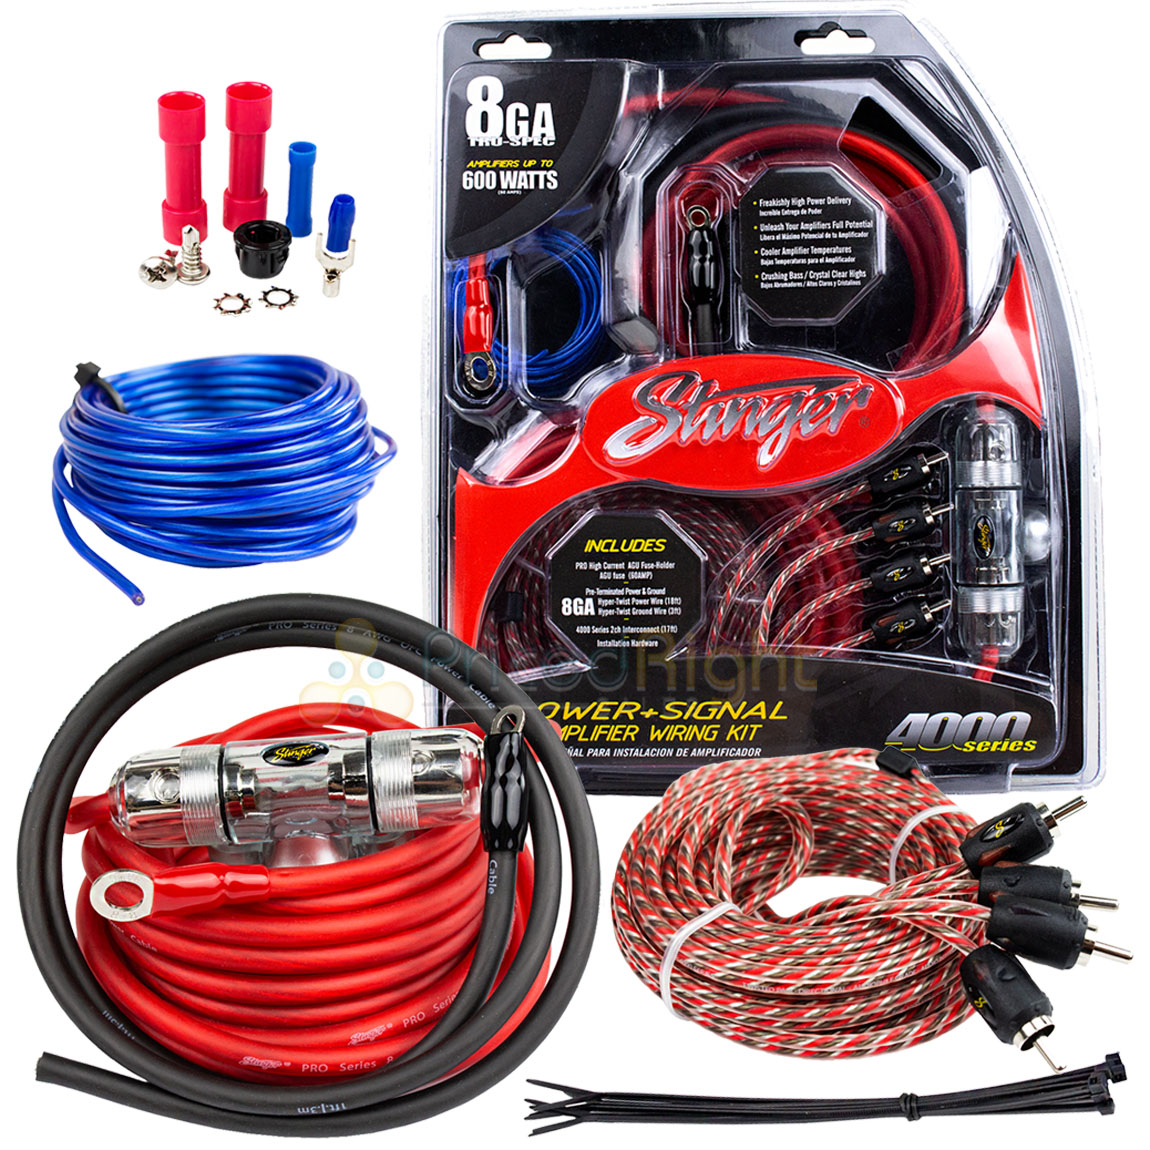 True 8 Gauge Awg 600 Watt Amplifier Wiring Kit Stinger Wiring Diagram